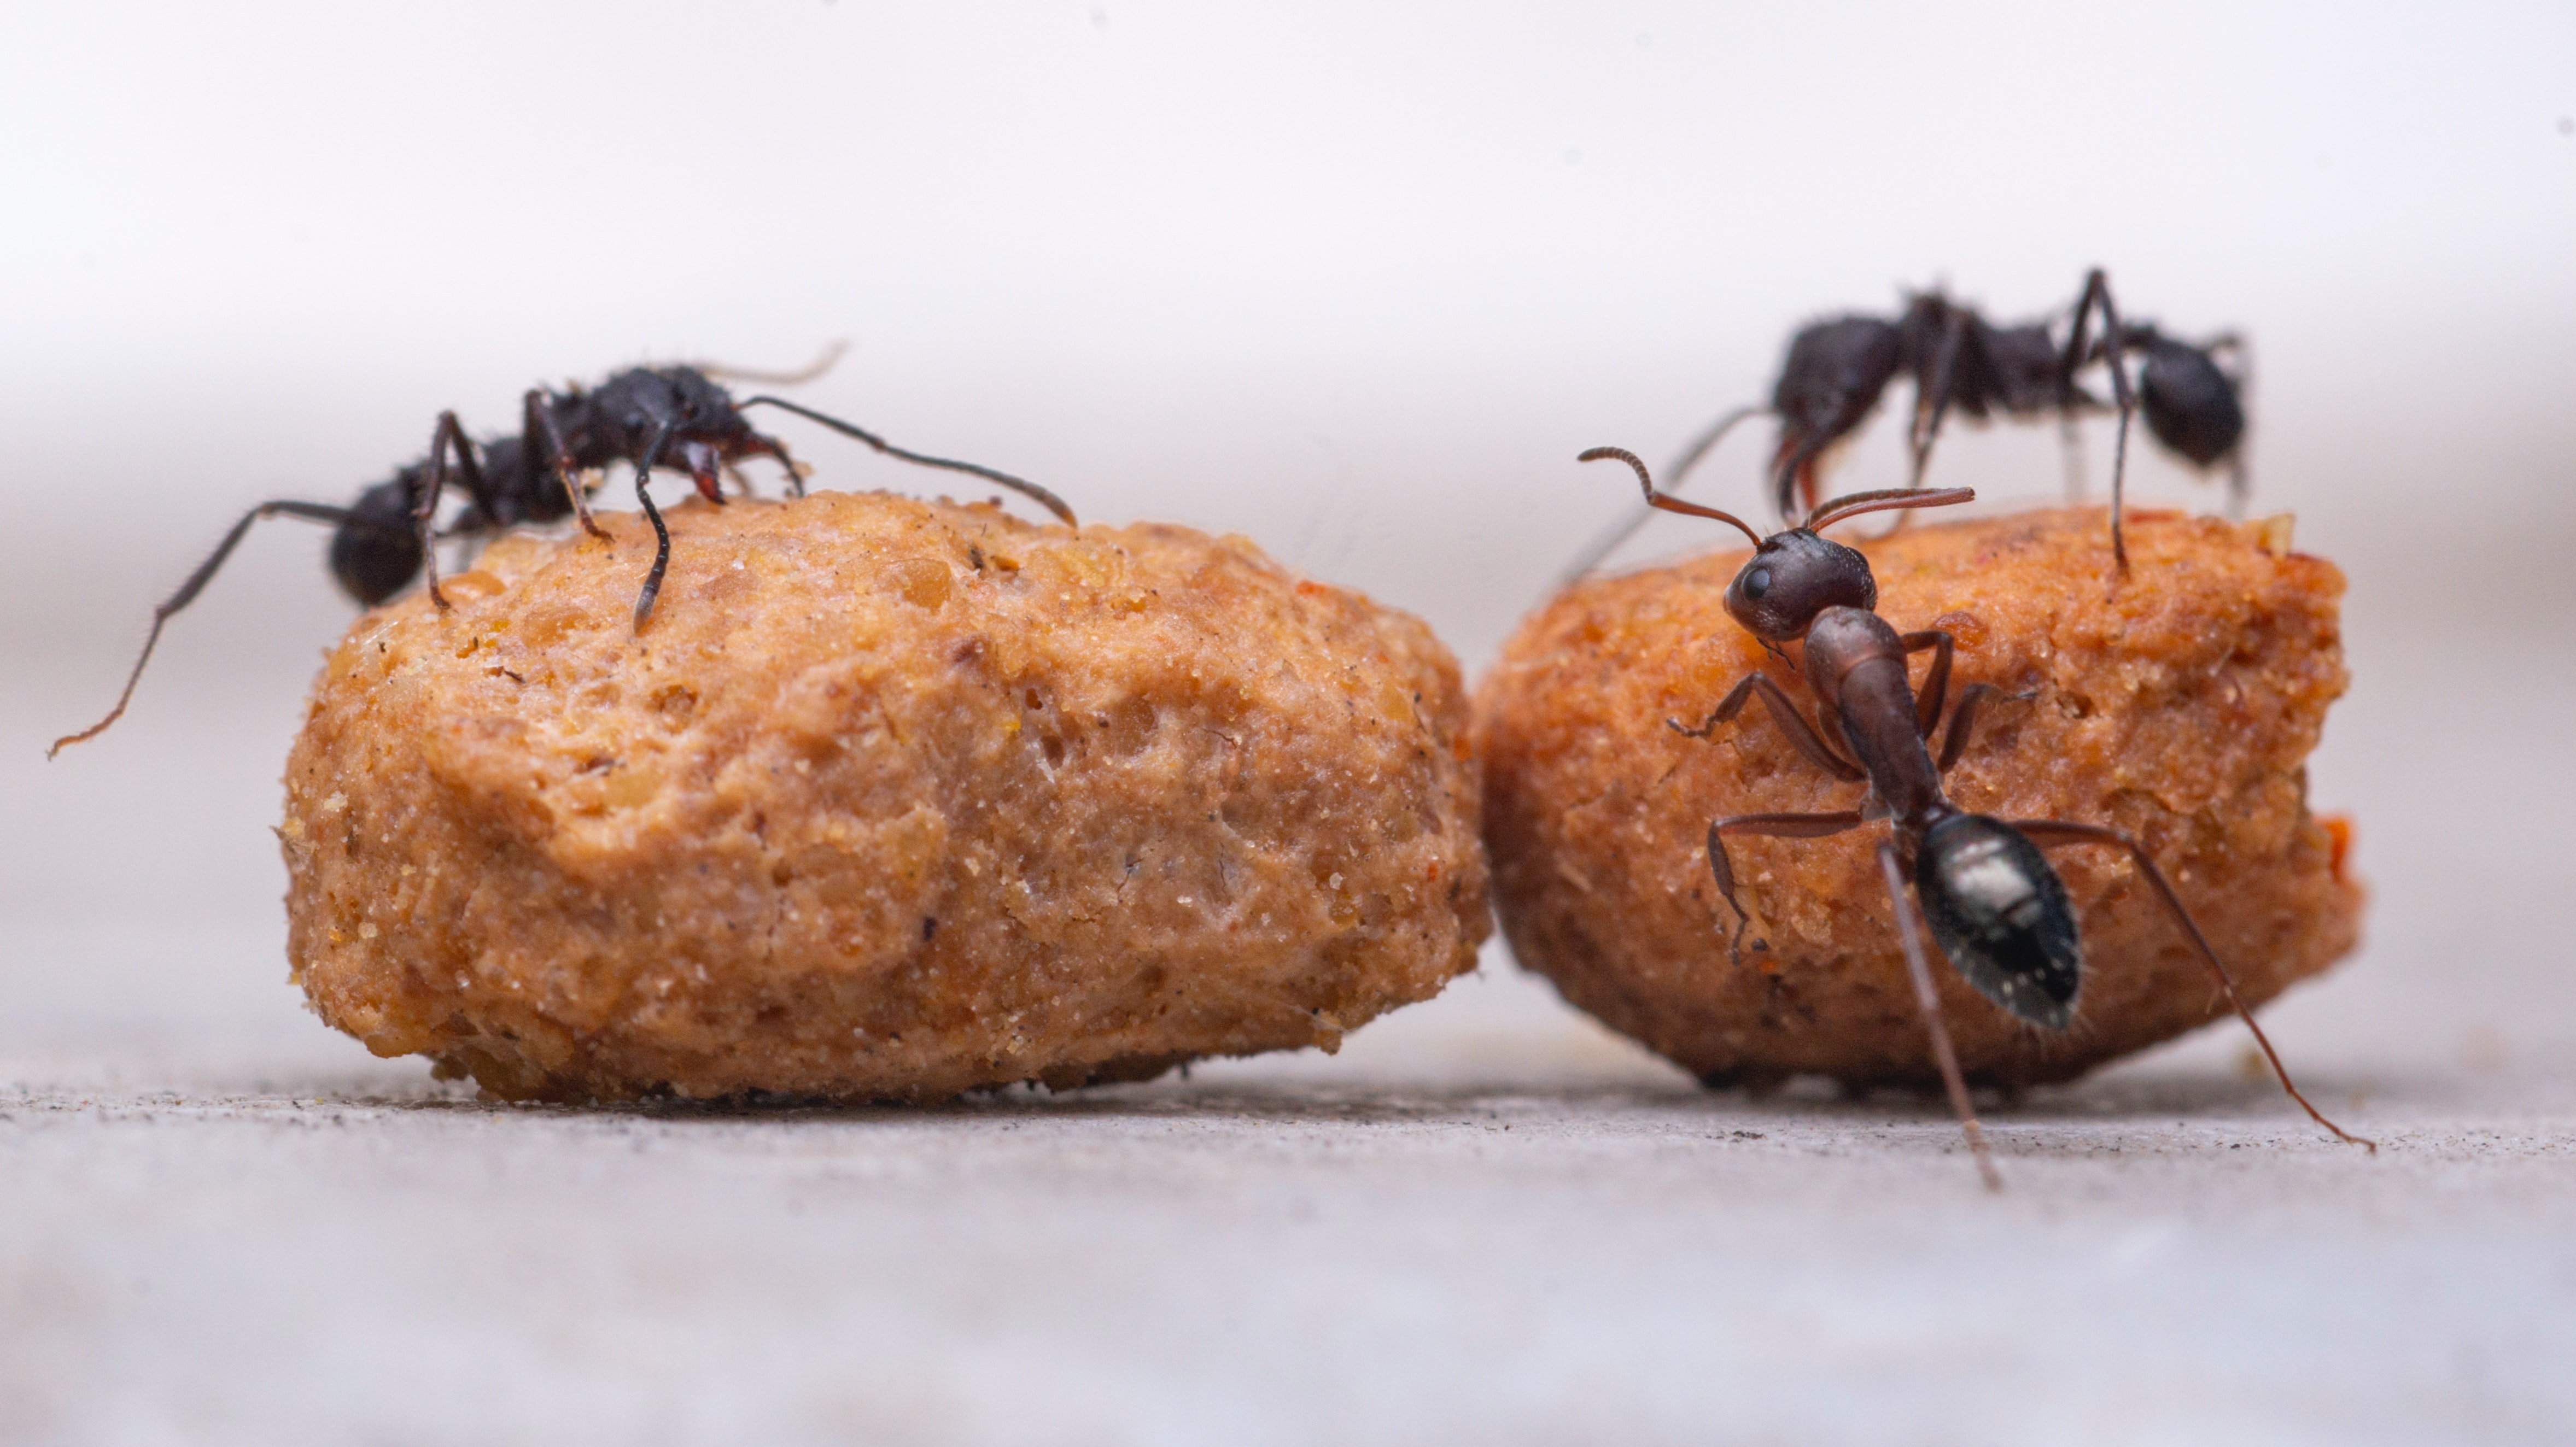 Ants foraging food